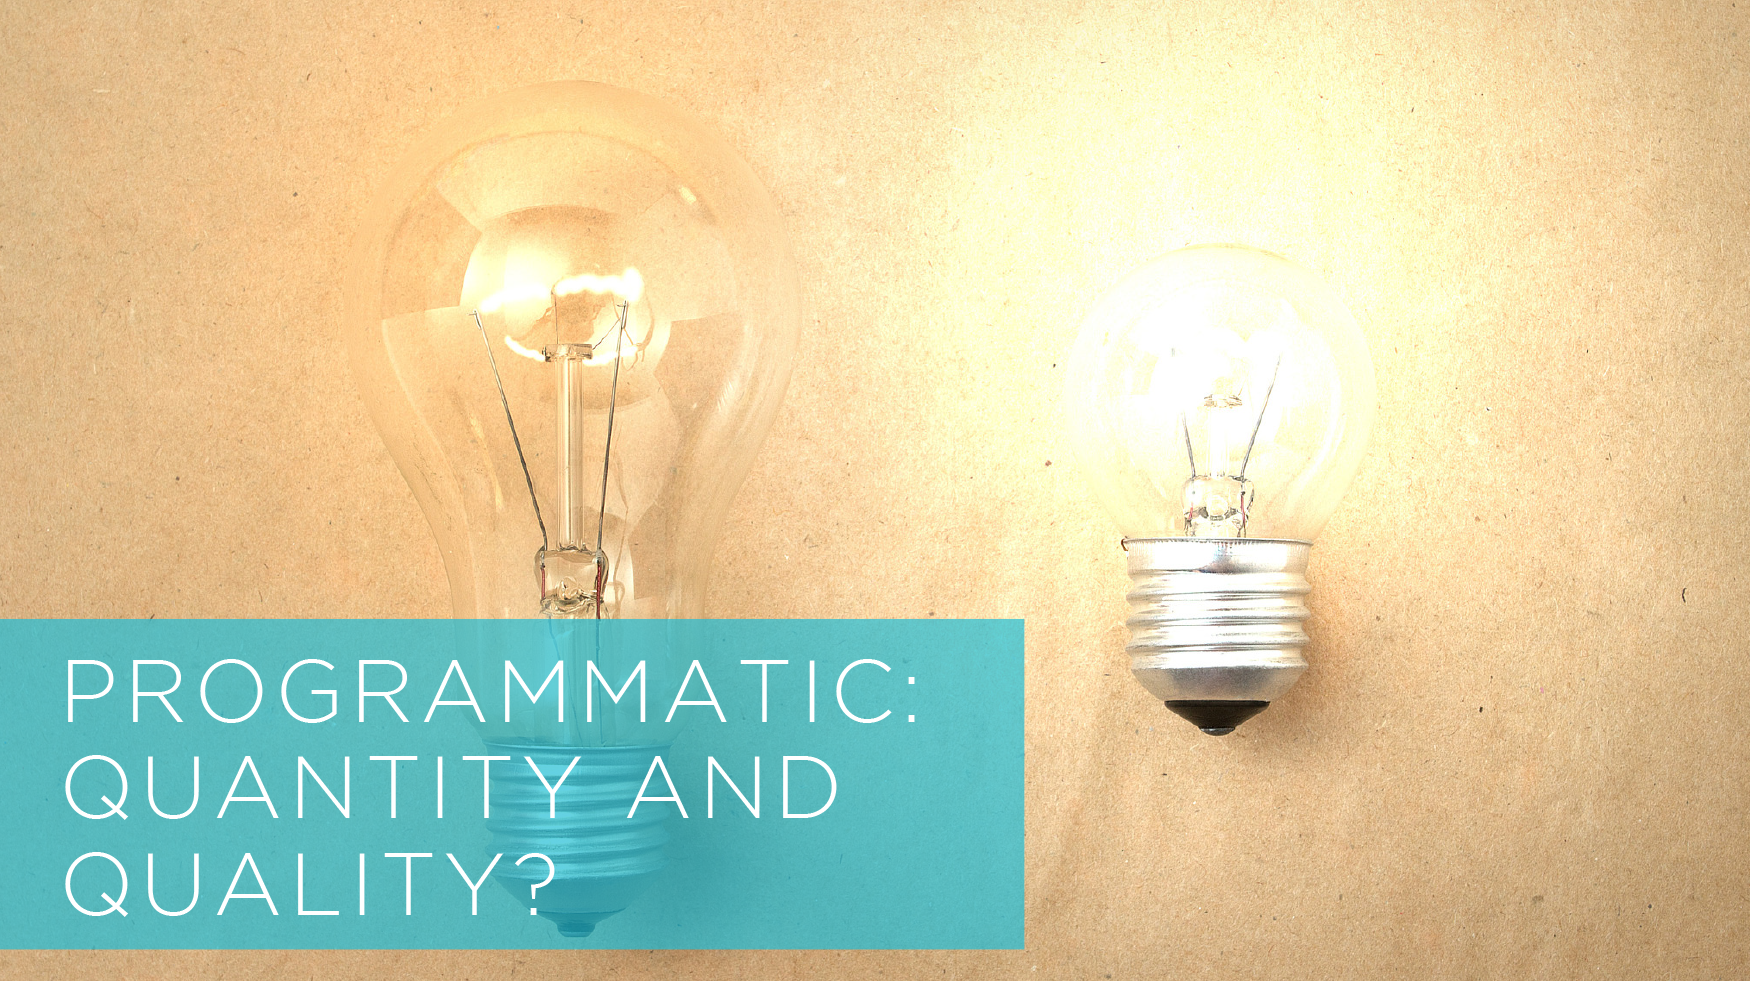 Programmatic: Quantity and Quality? - Featured Image